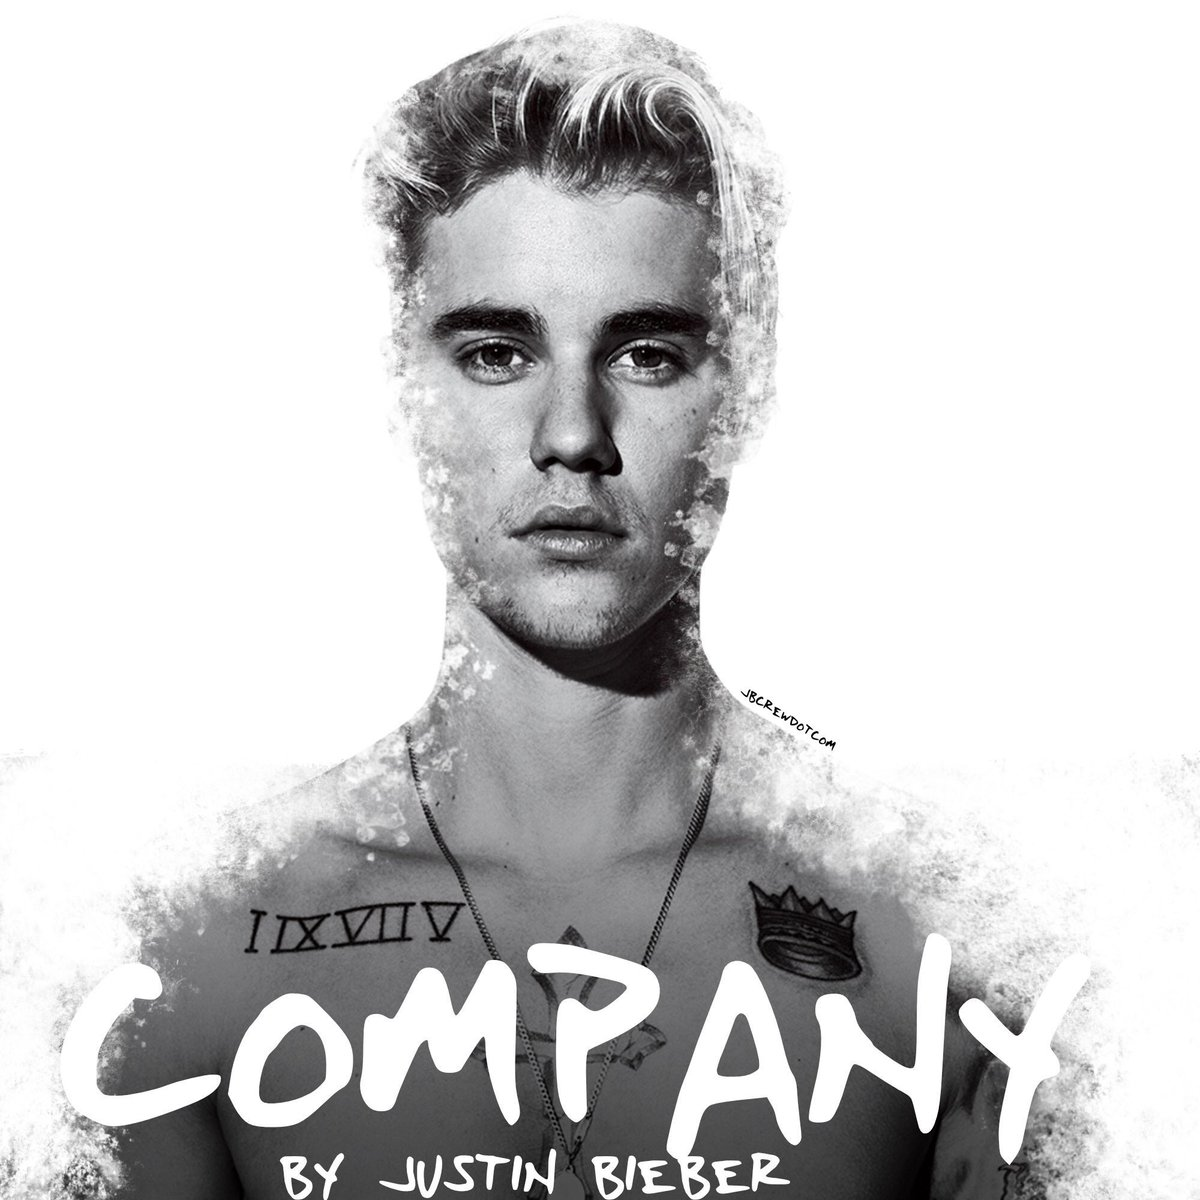 """#JacaTop20 @justinbieber maintains his steady climb up the chart with """"Company"""" moving up to No.13 https://t.co/PnzFF4FWNq"""